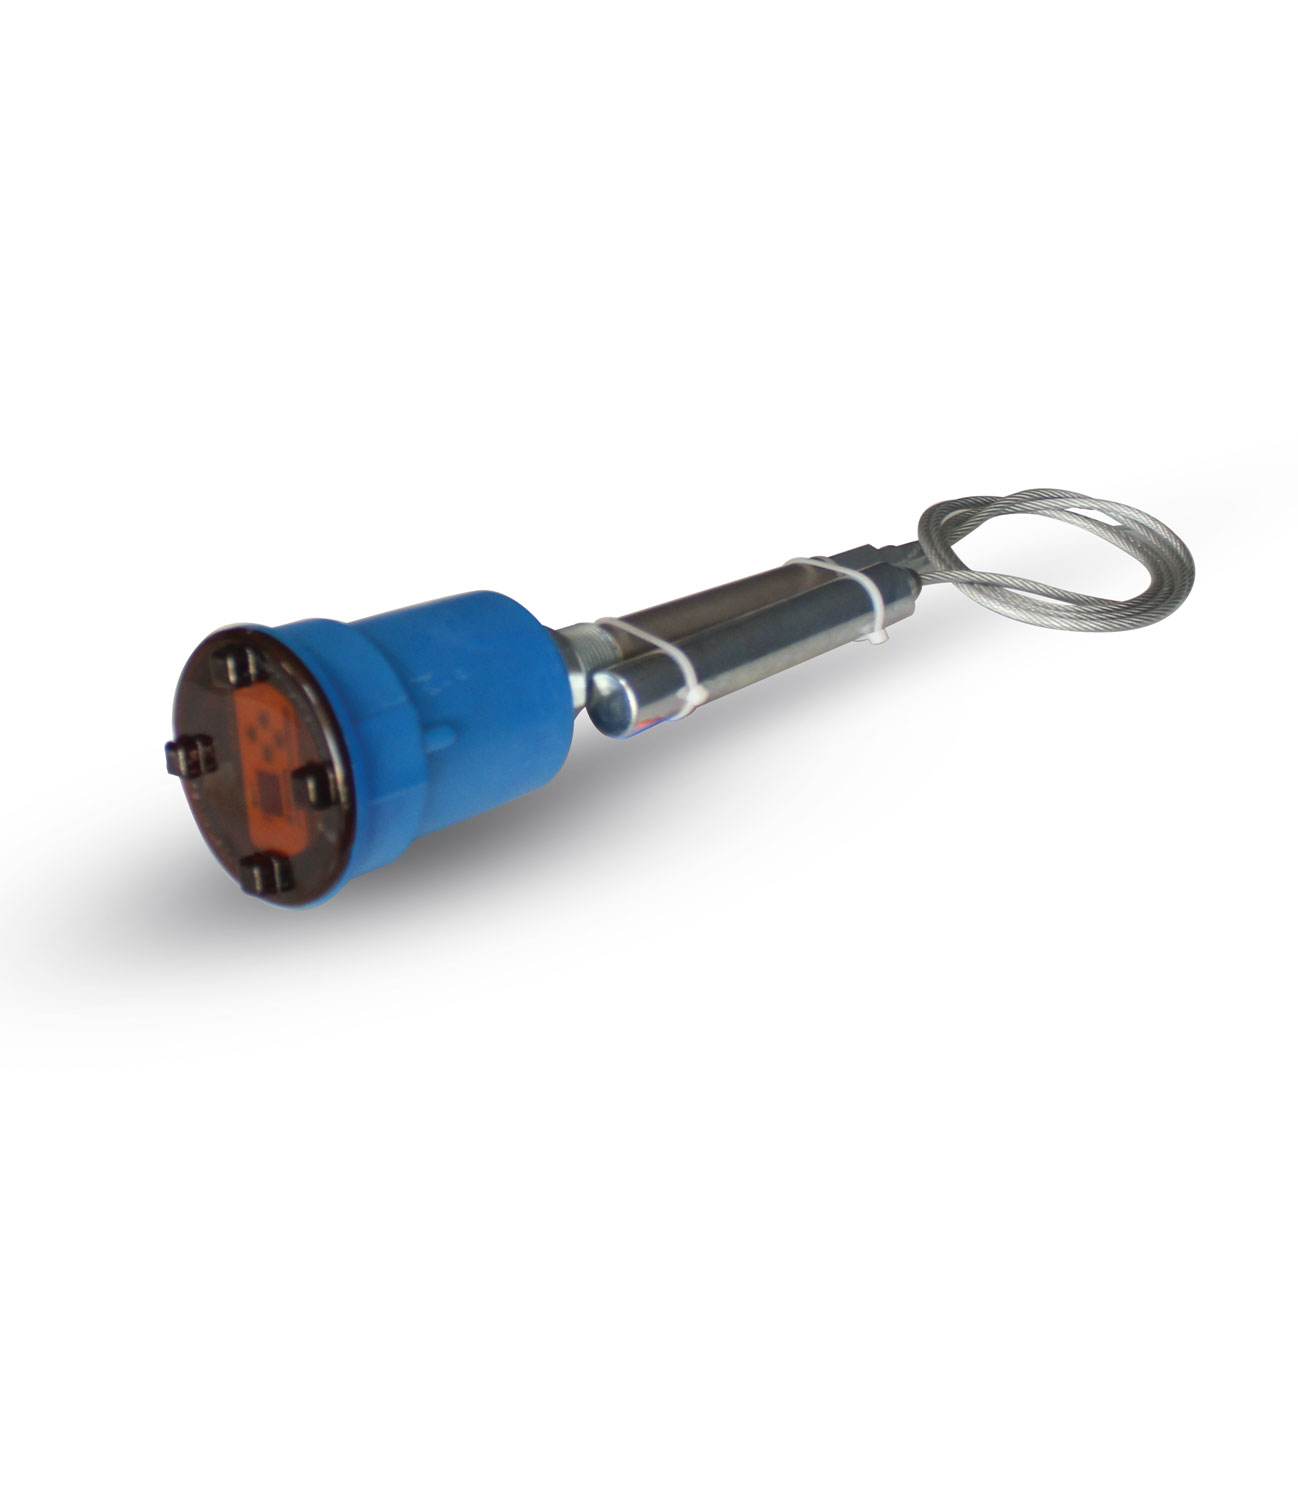 Digital Capacitive Level Sensor (with Rope)